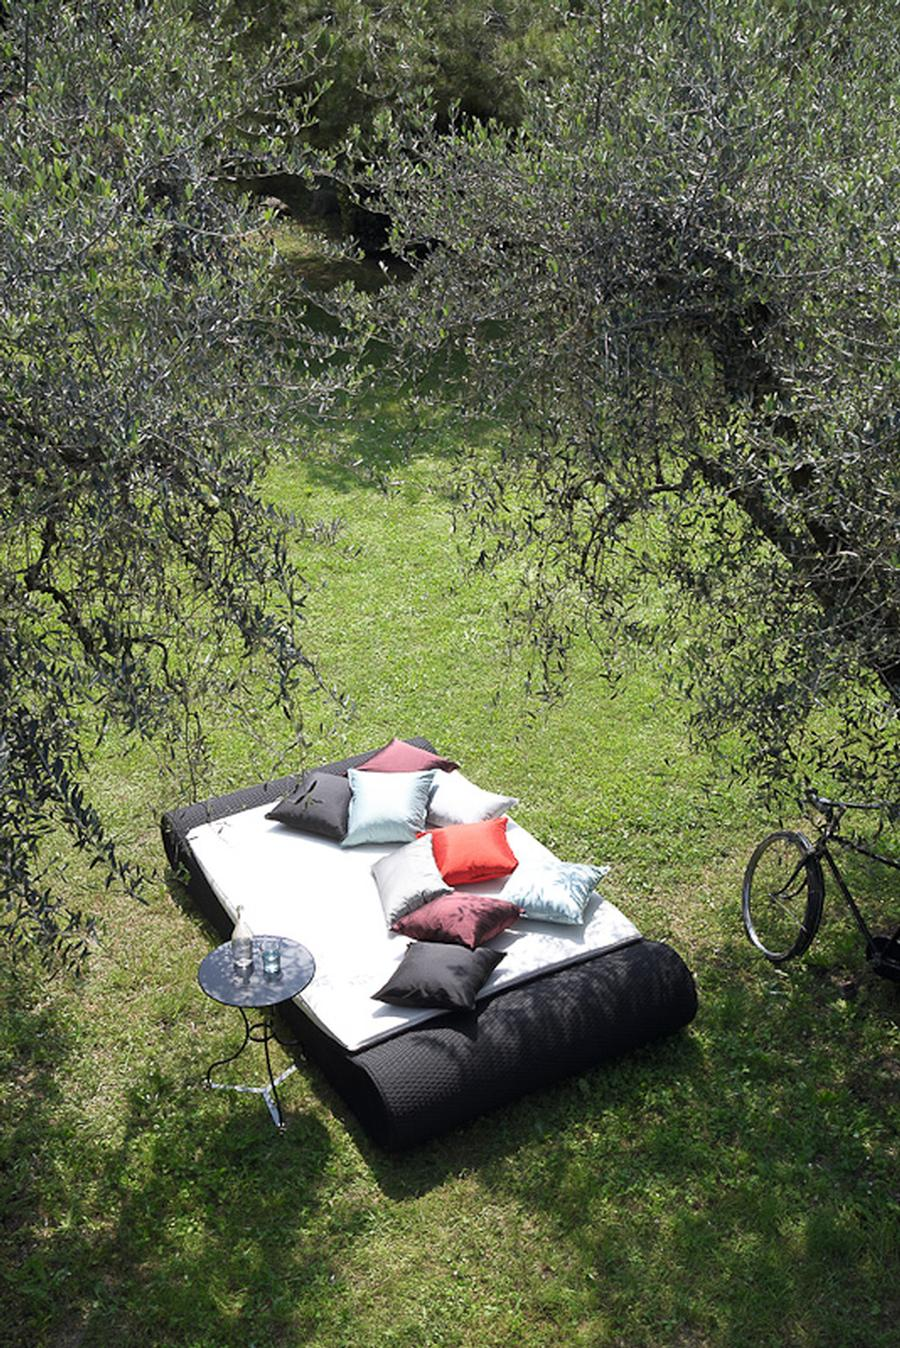 Full Size of Outdoor Bett Manteau Betty Barclay Parka Flying Beetles Small Pests Better Homes And Gardens Rugs Hund Sectional Bauen Ed Designed By Garden Collection Wohnzimmer Outdoor Bett